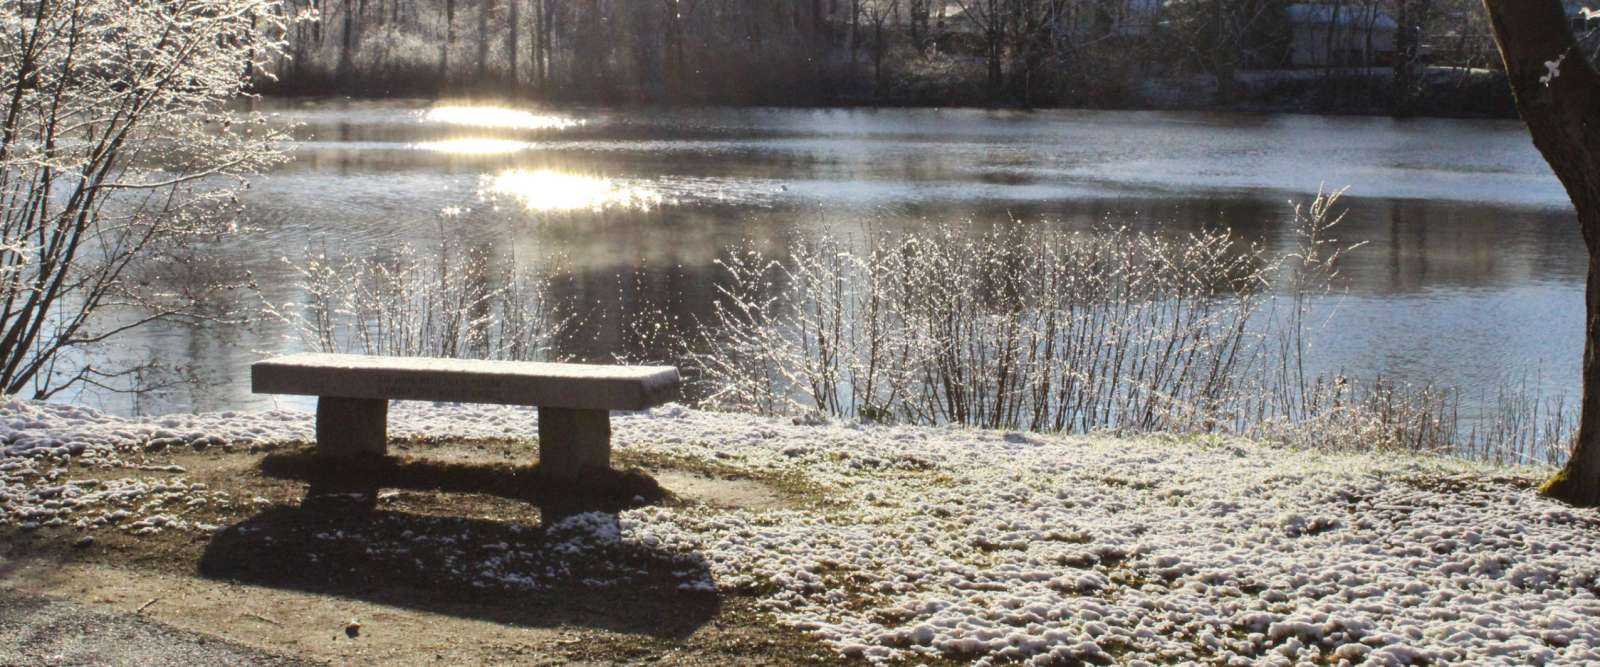 Bench overlooking pond